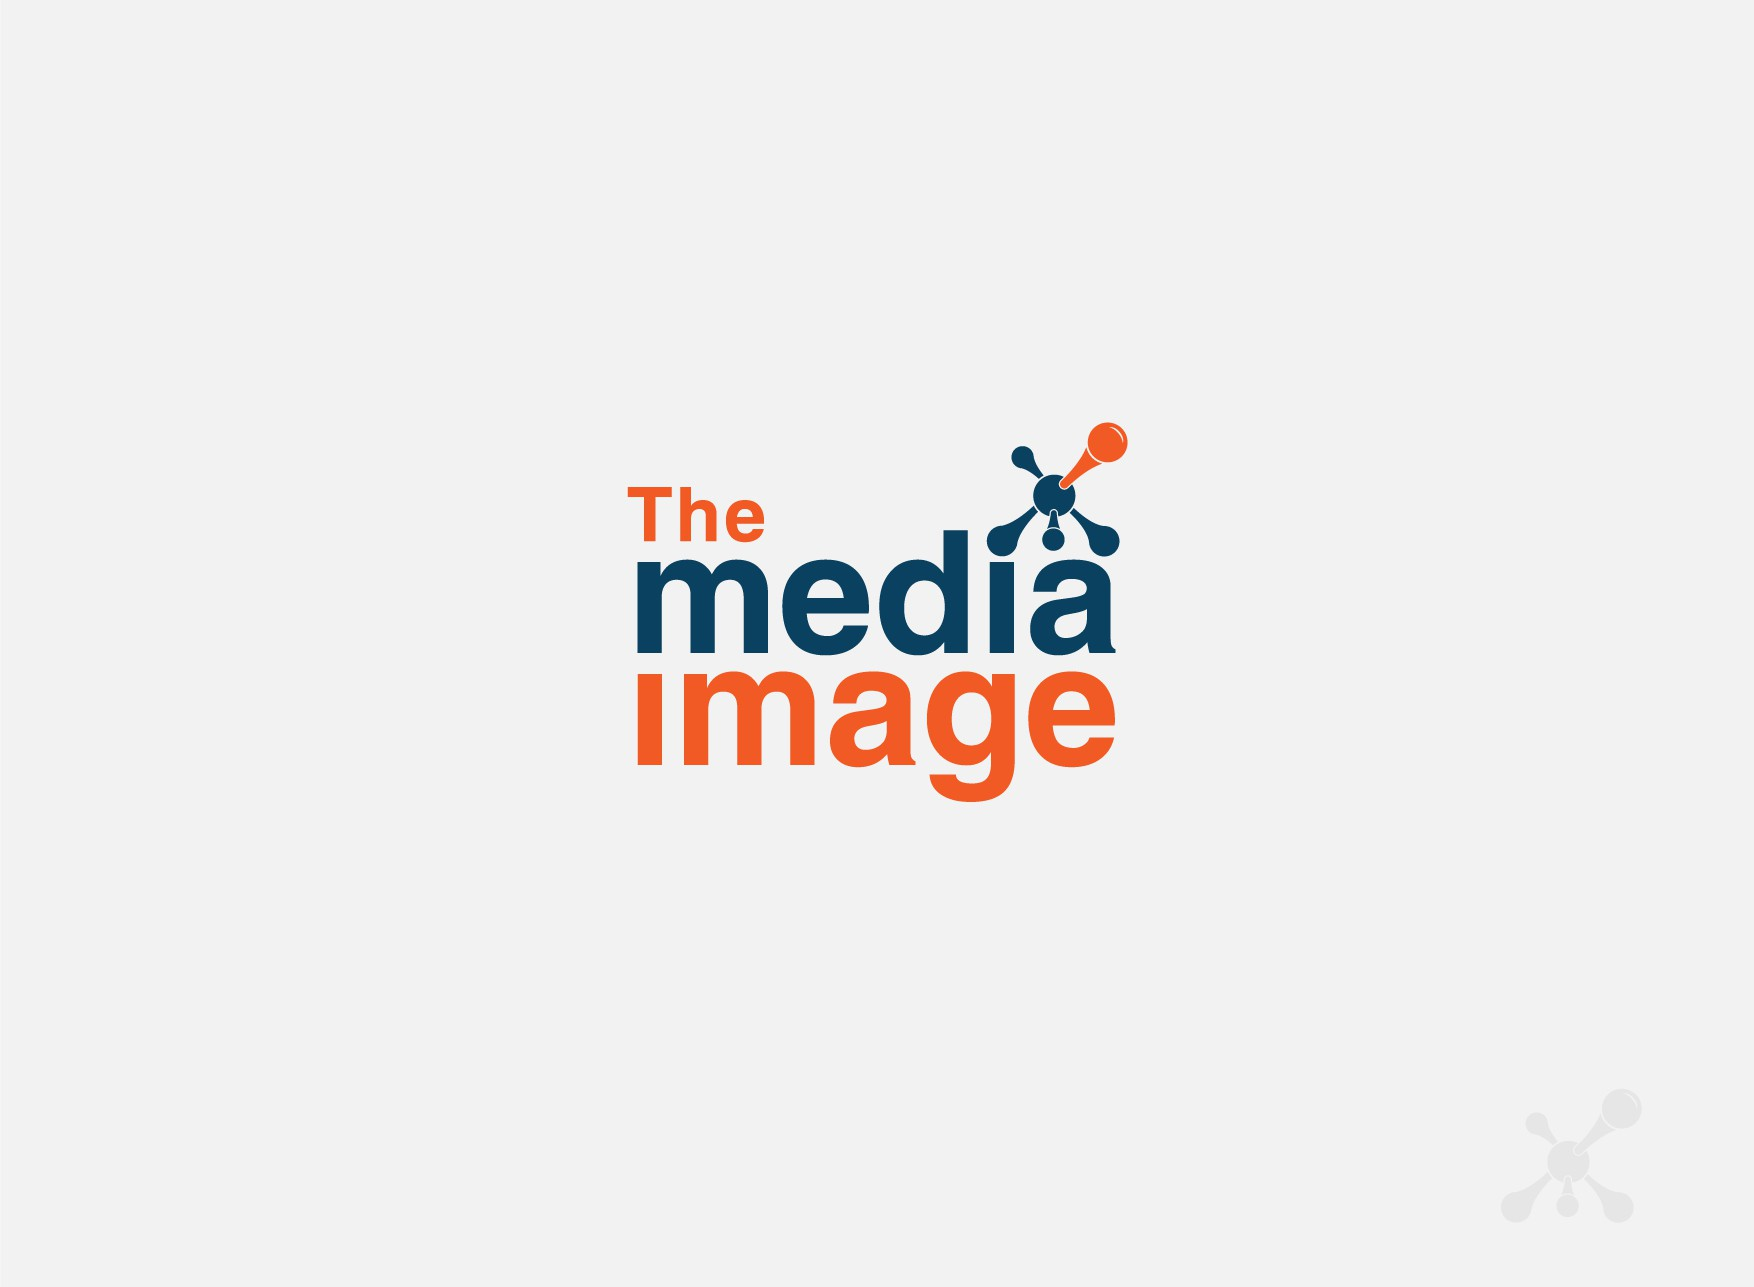 Create a new logo for leading online advertsing agency The Media Image